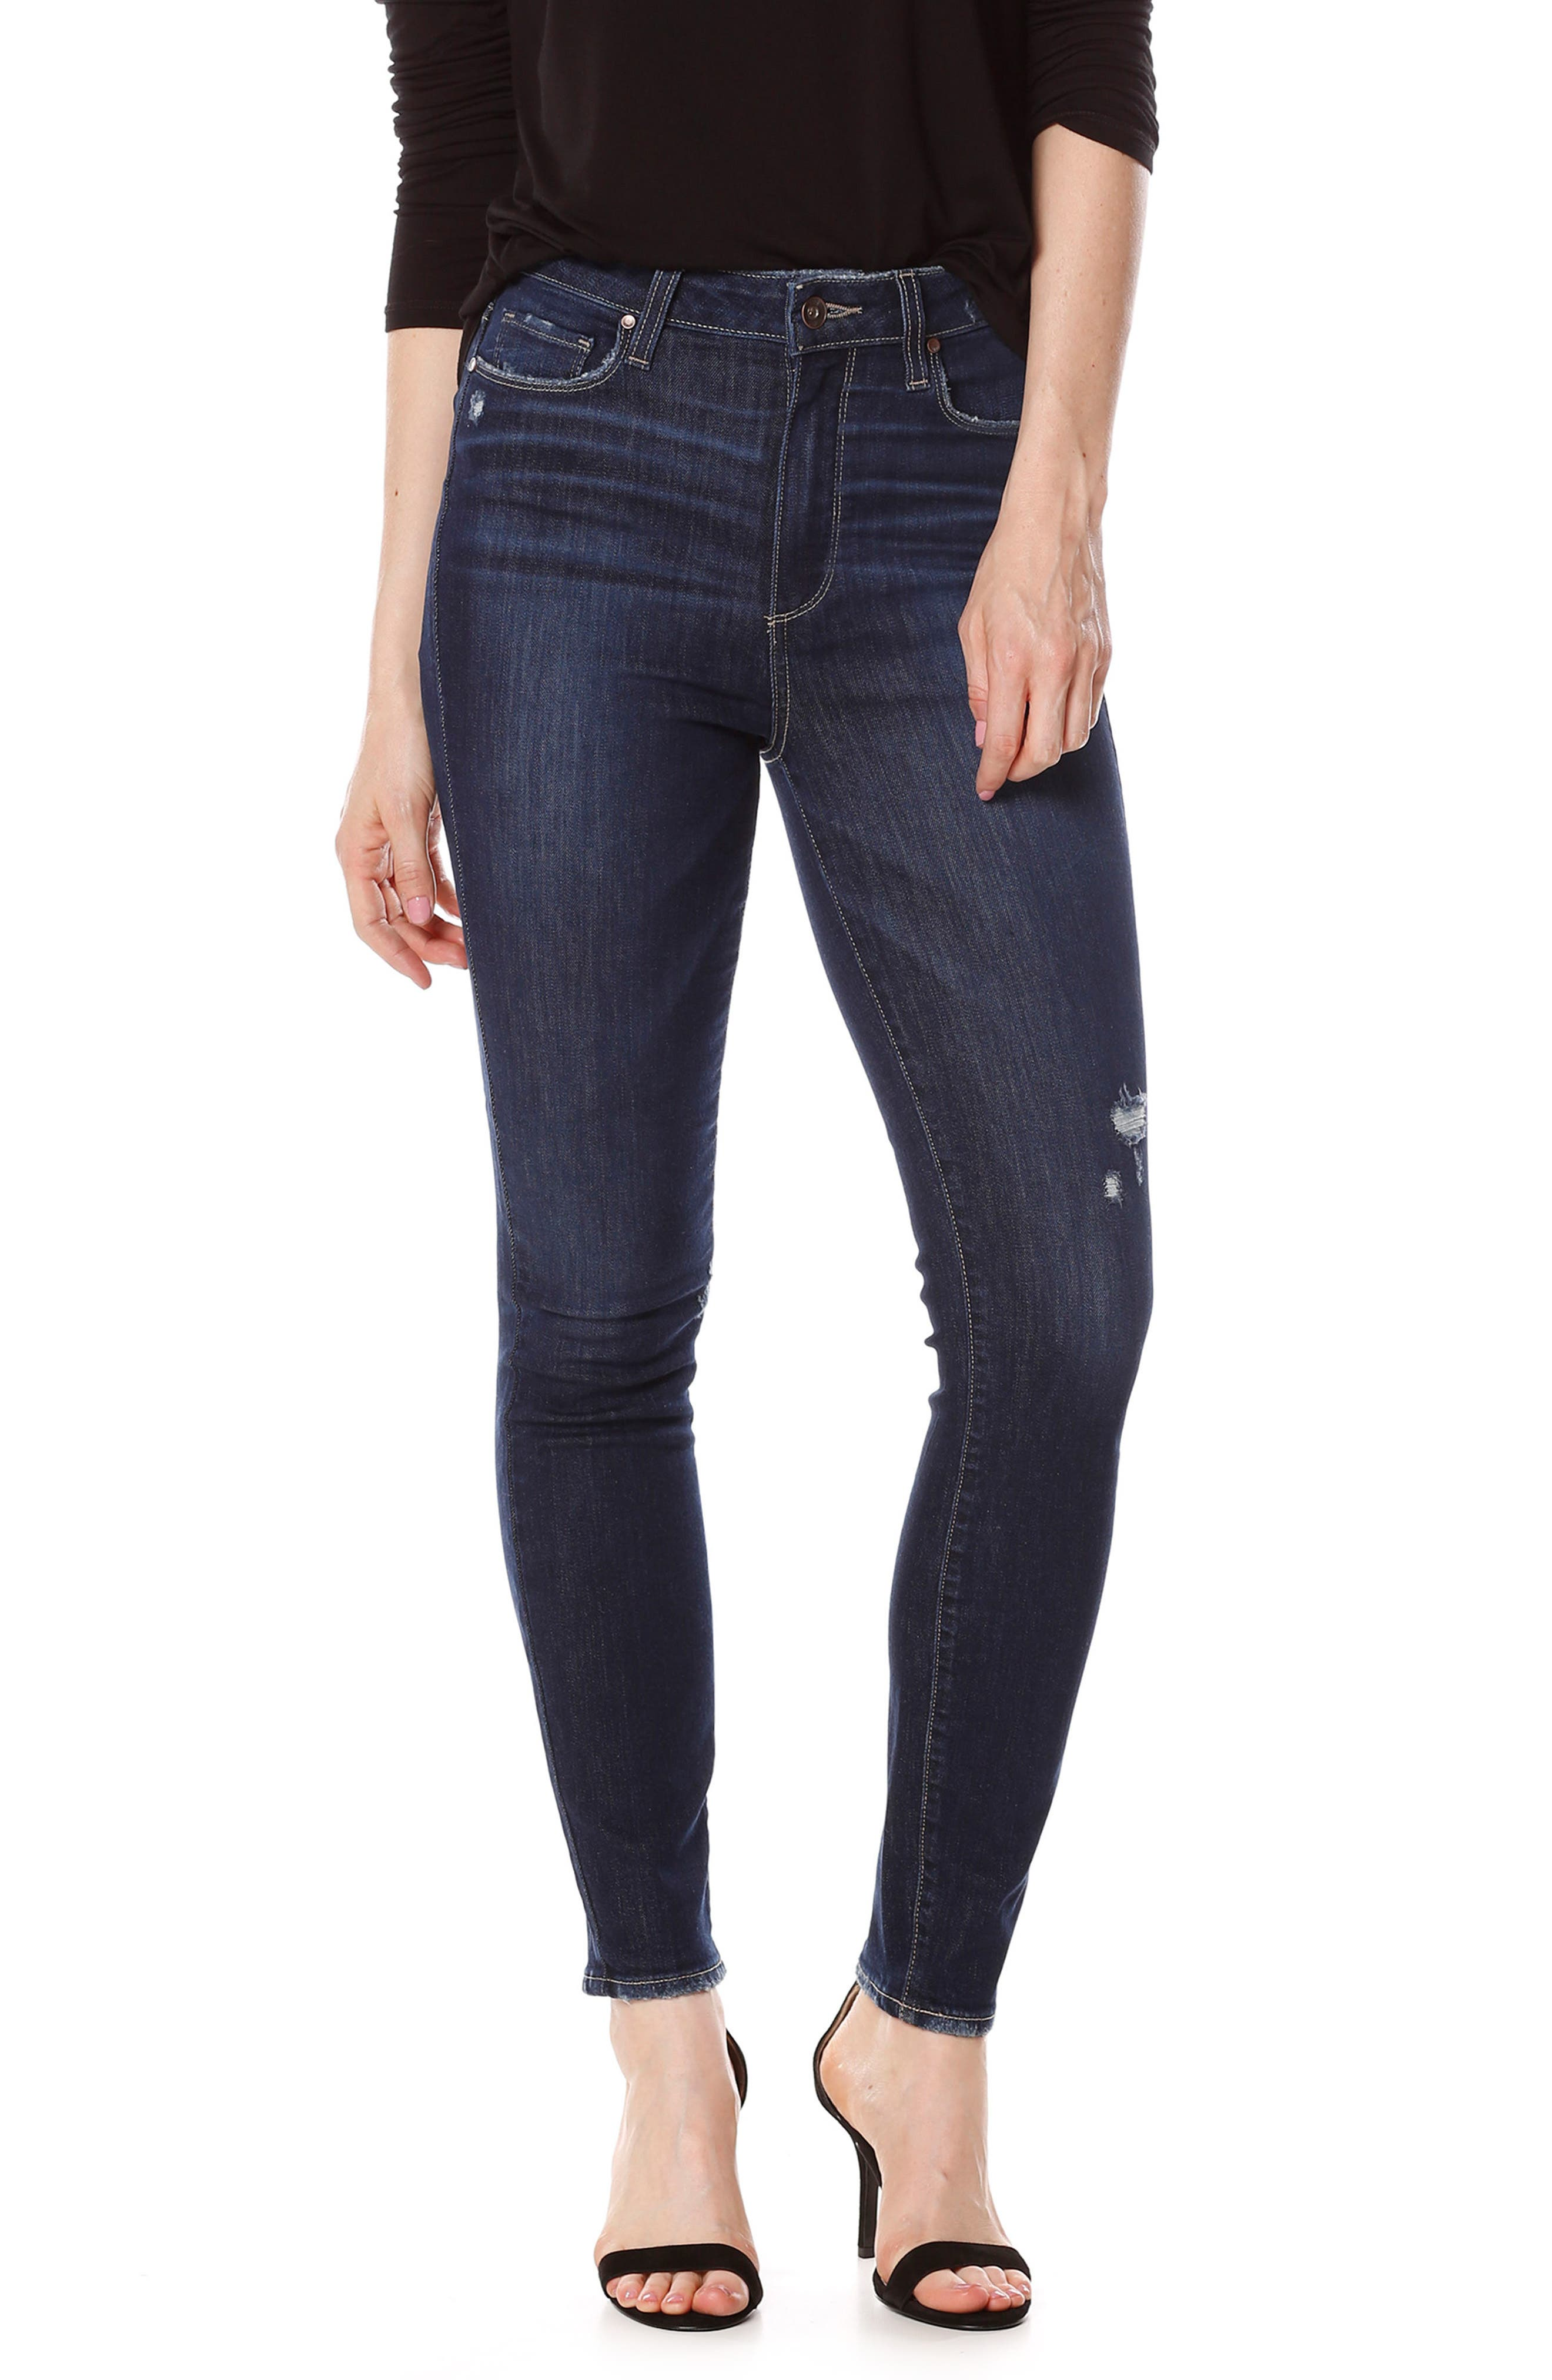 Margot High Waist Ankle Skinny Jeans,                             Main thumbnail 1, color,                             400